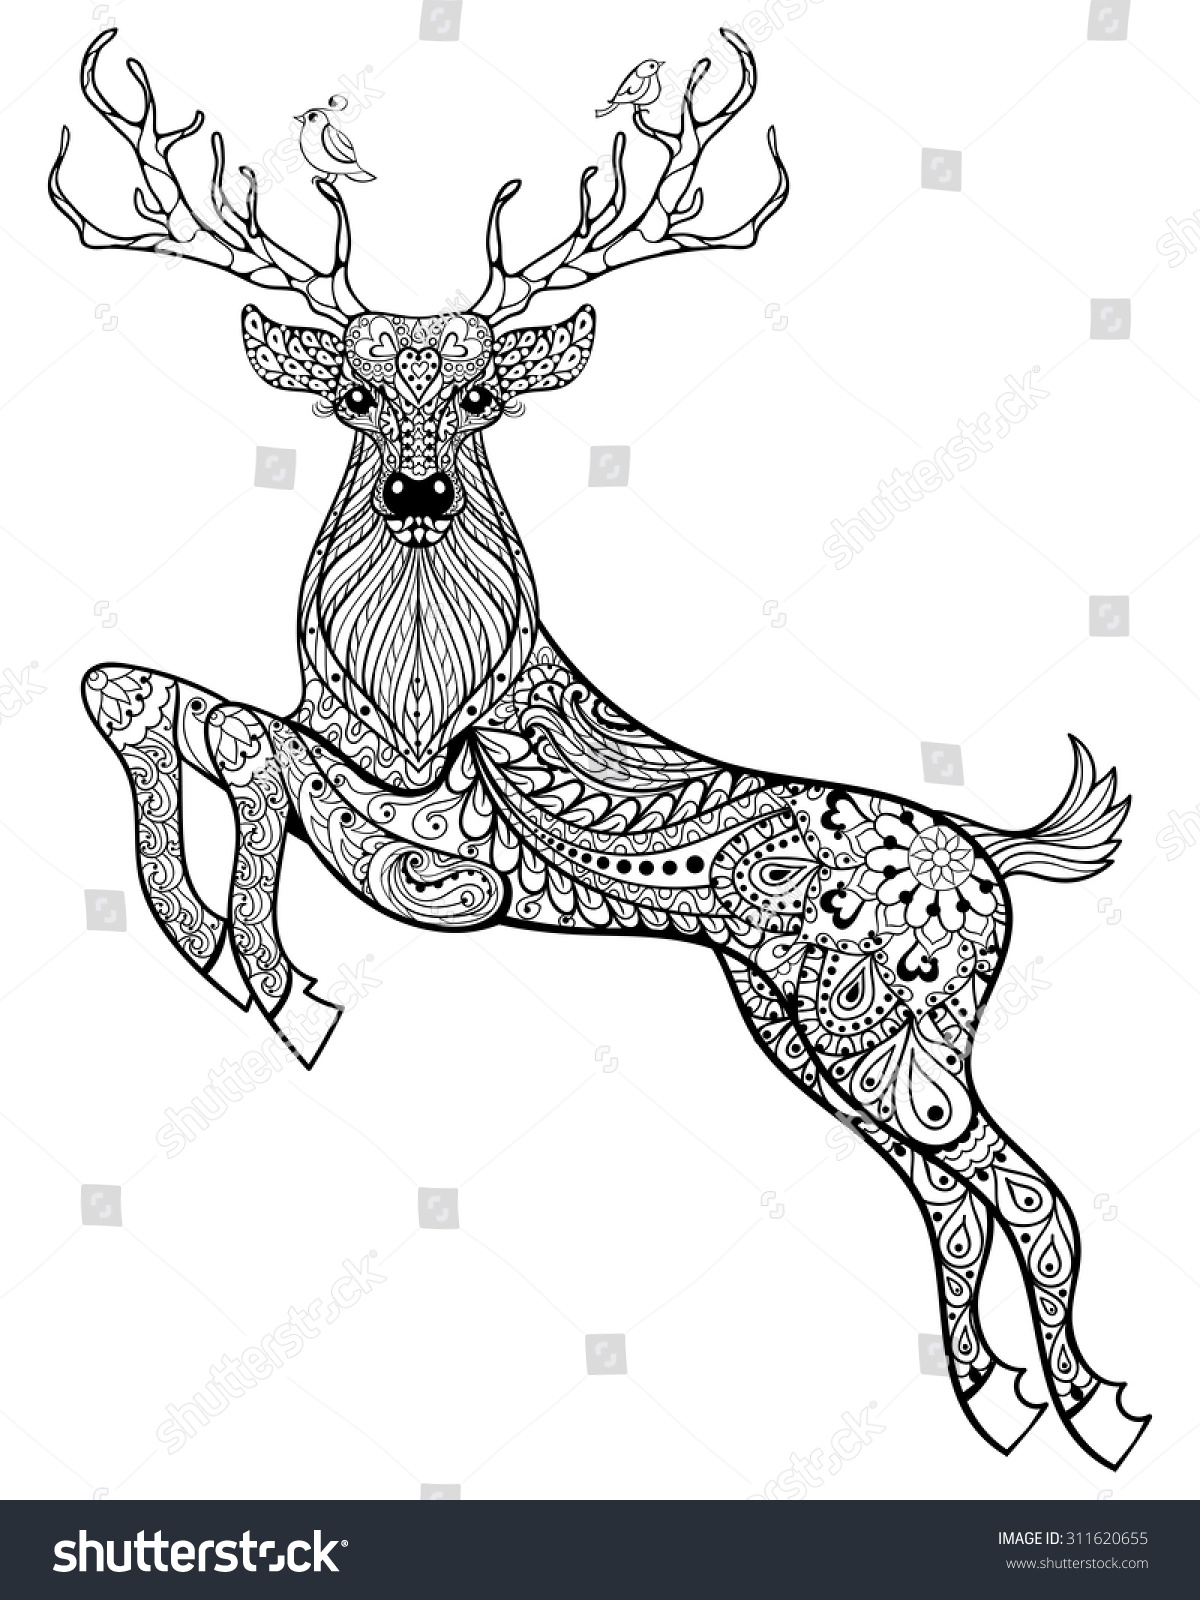 deer hand drawn christmas magic horned stock vector 311620655